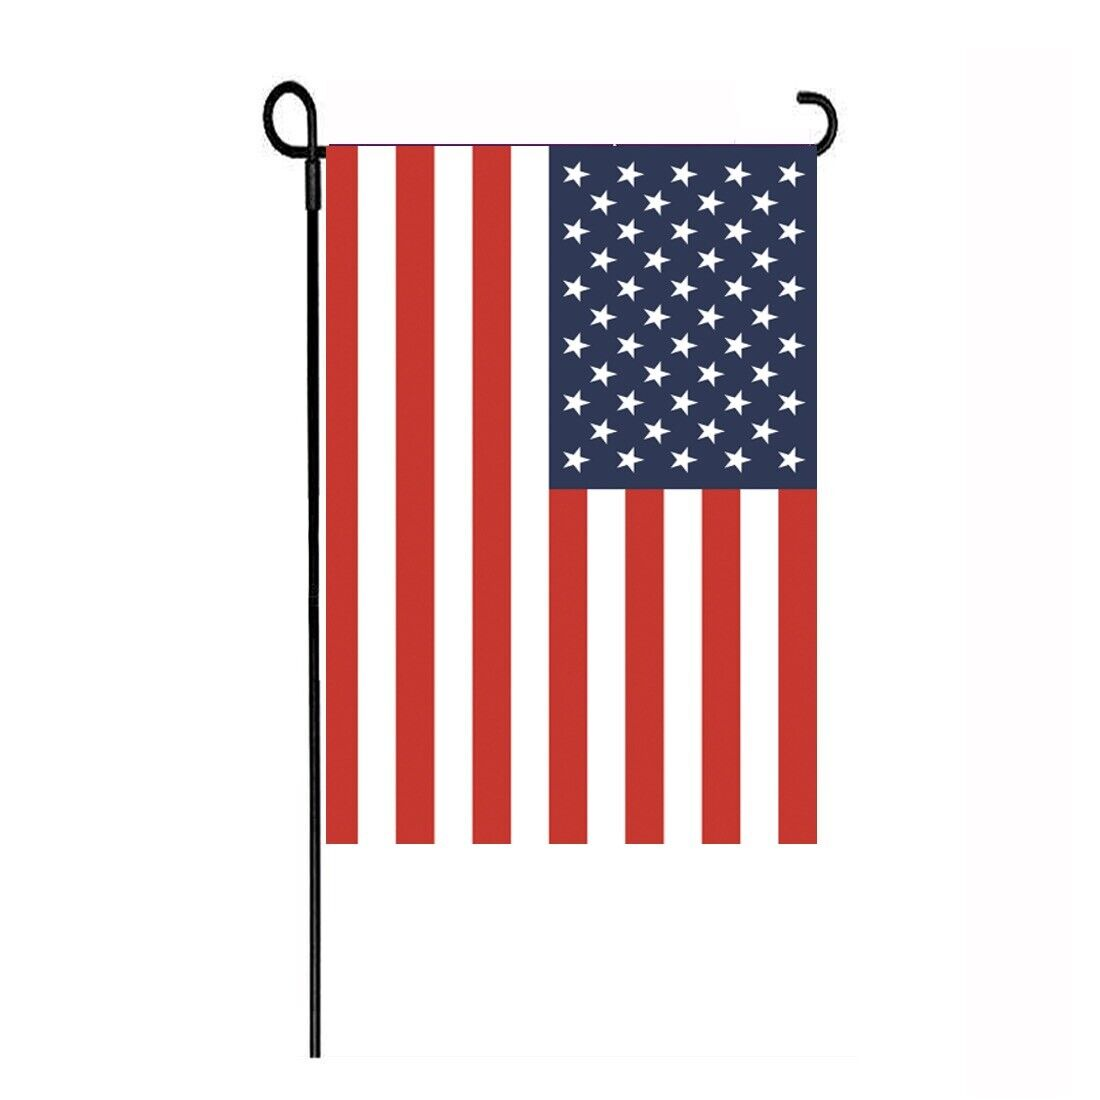 AMERICAN FLAG PATRIOTIC STARS AND STRIPES YARD GARDEN FLAG 1